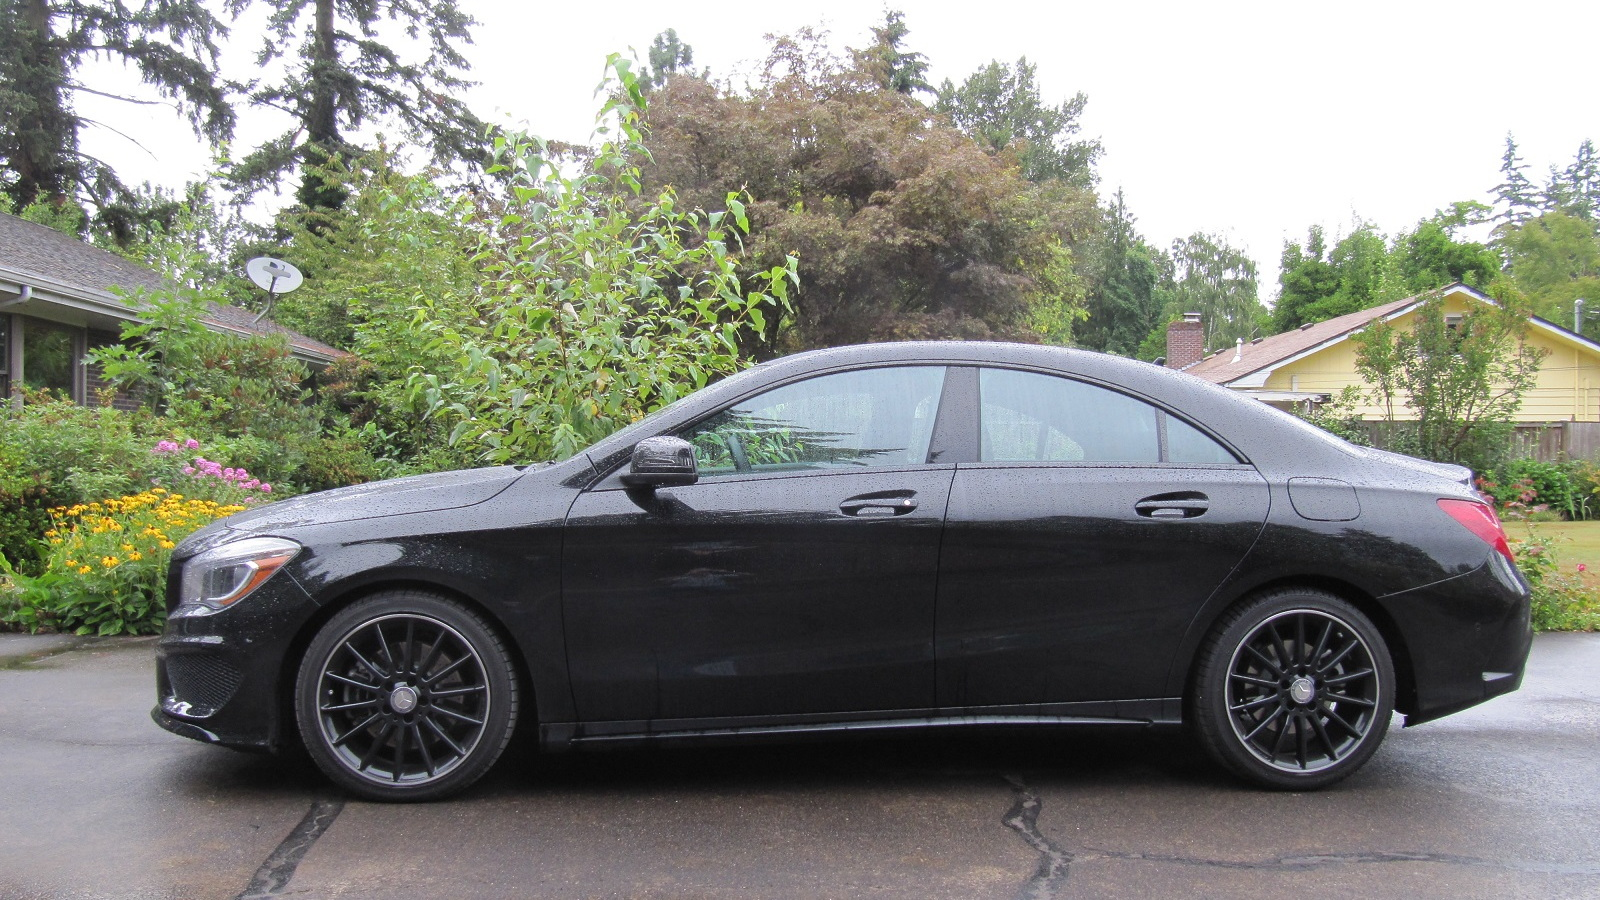 2014 Mercedes-Benz CLA 250: Gas Mileage Review Of Compact